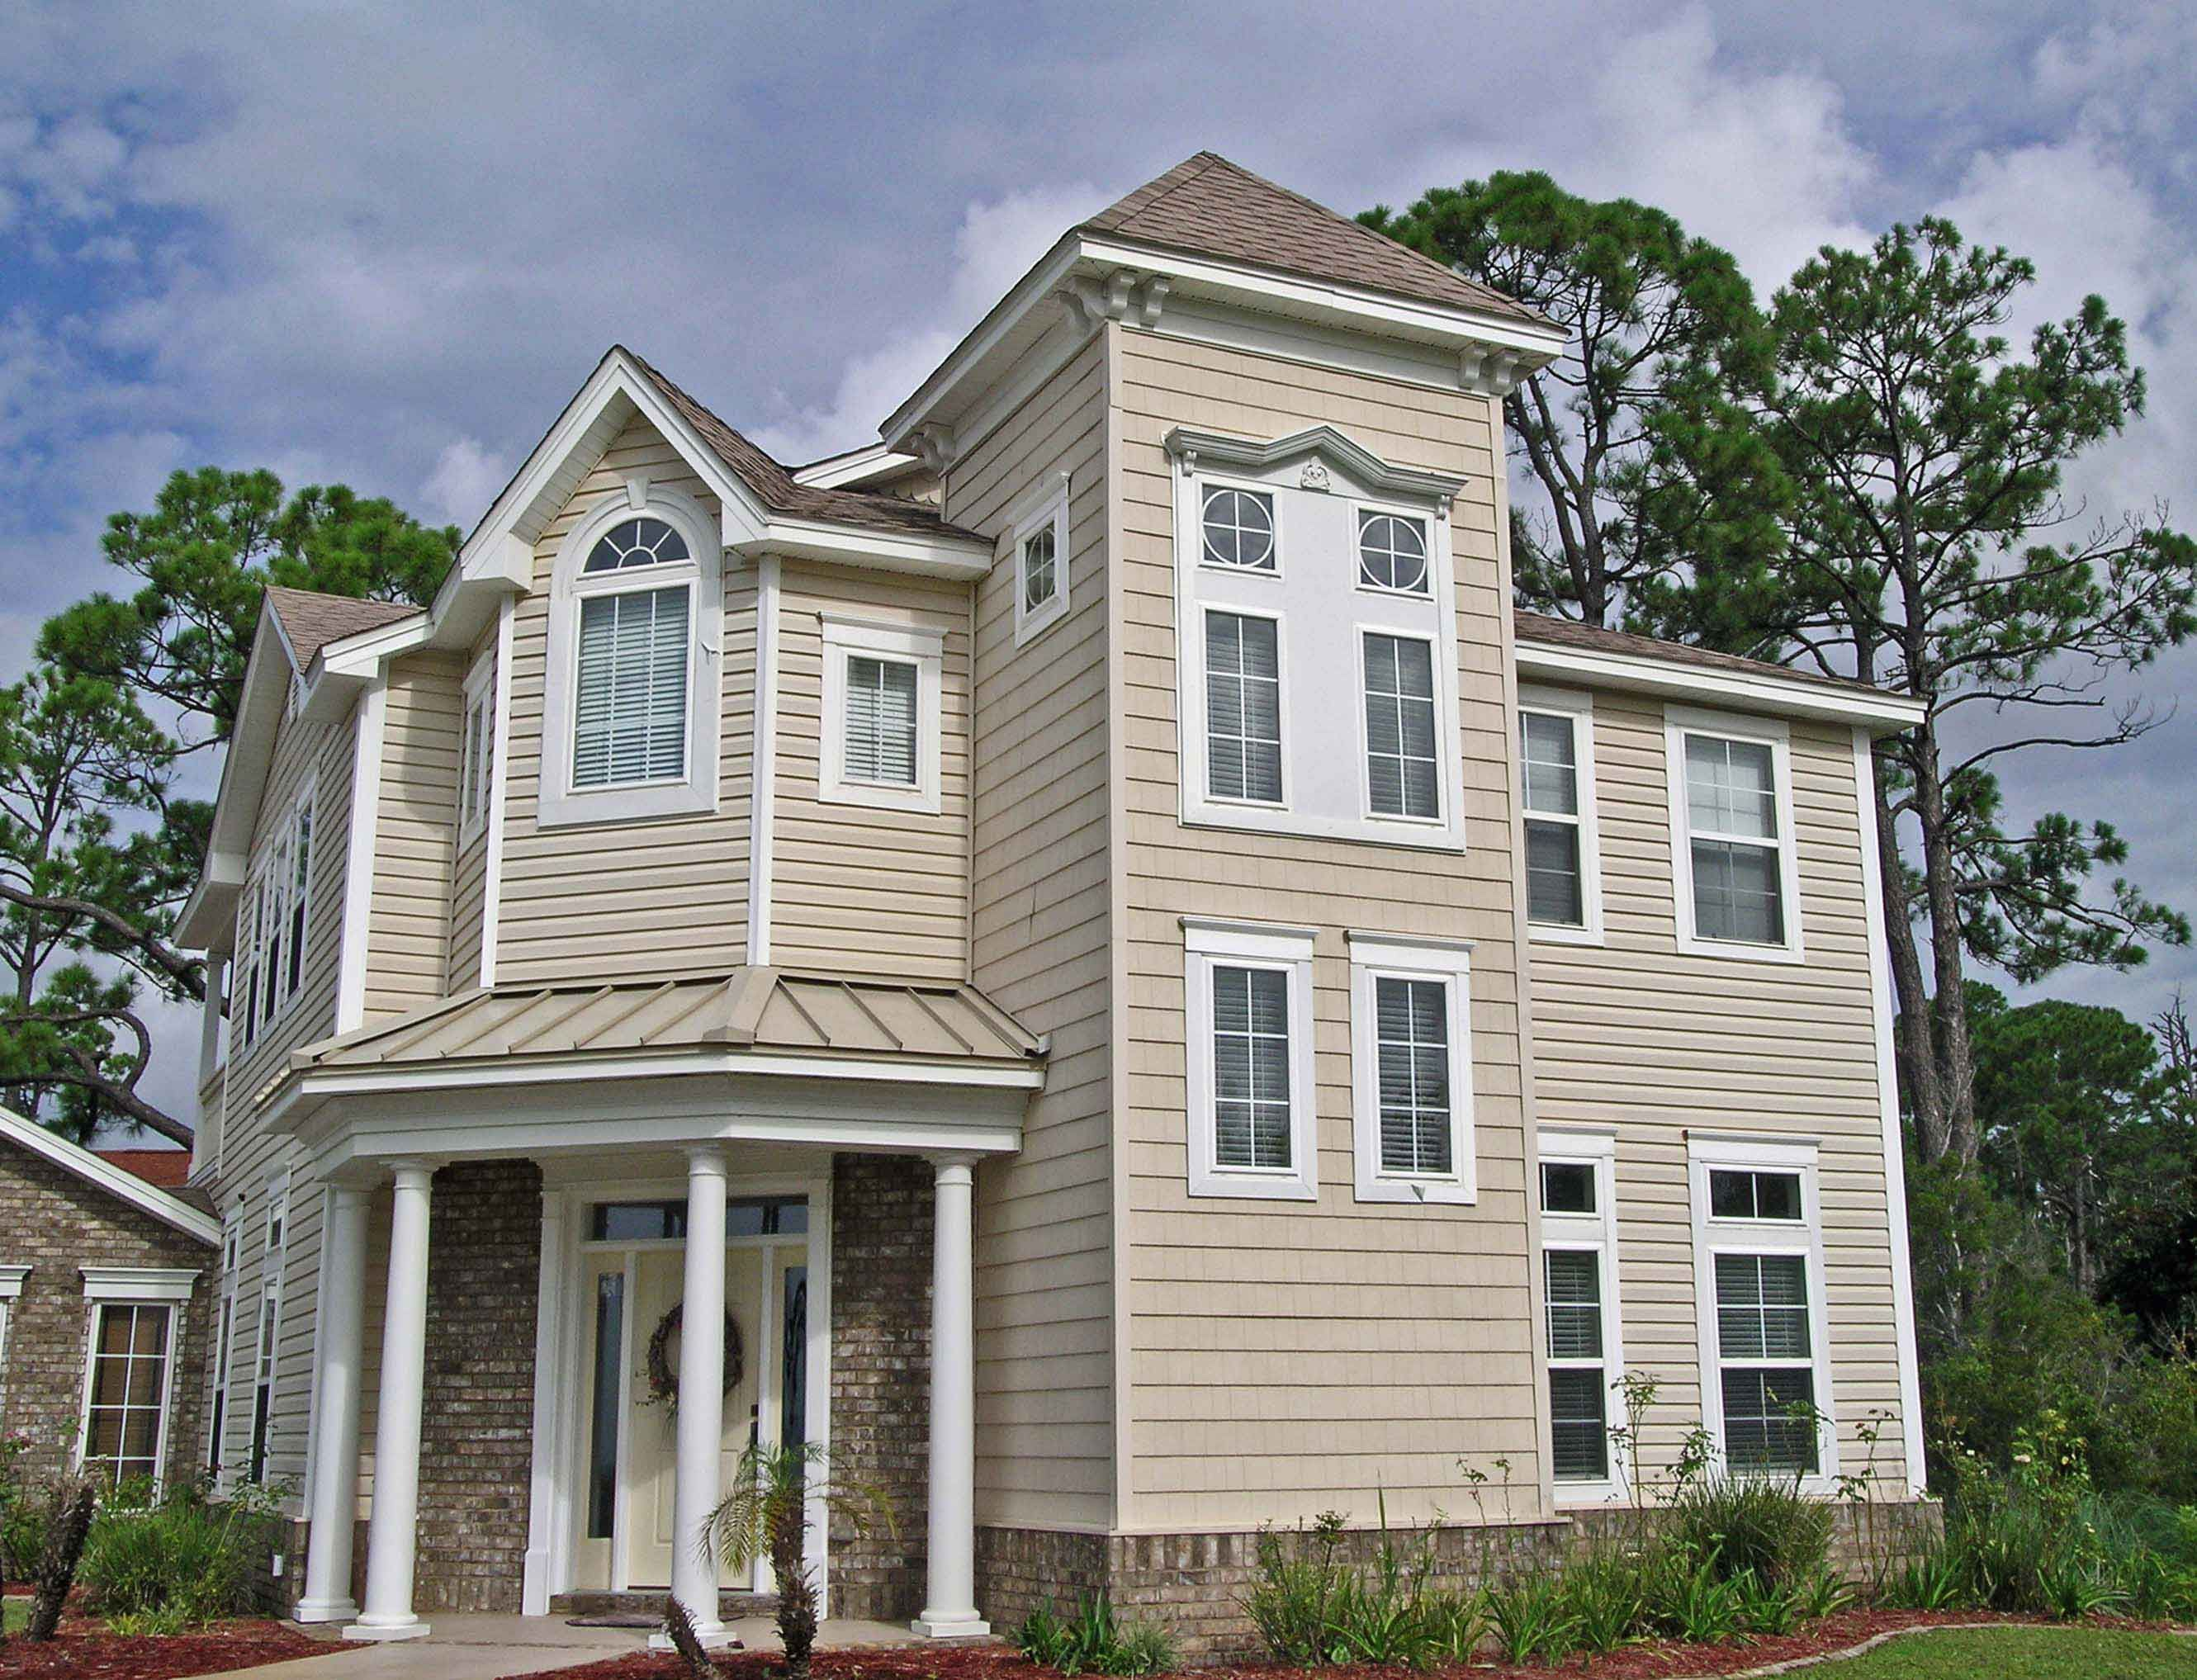 Craftsman style custom home by Acorn Fine Homes in Gulf Breeze